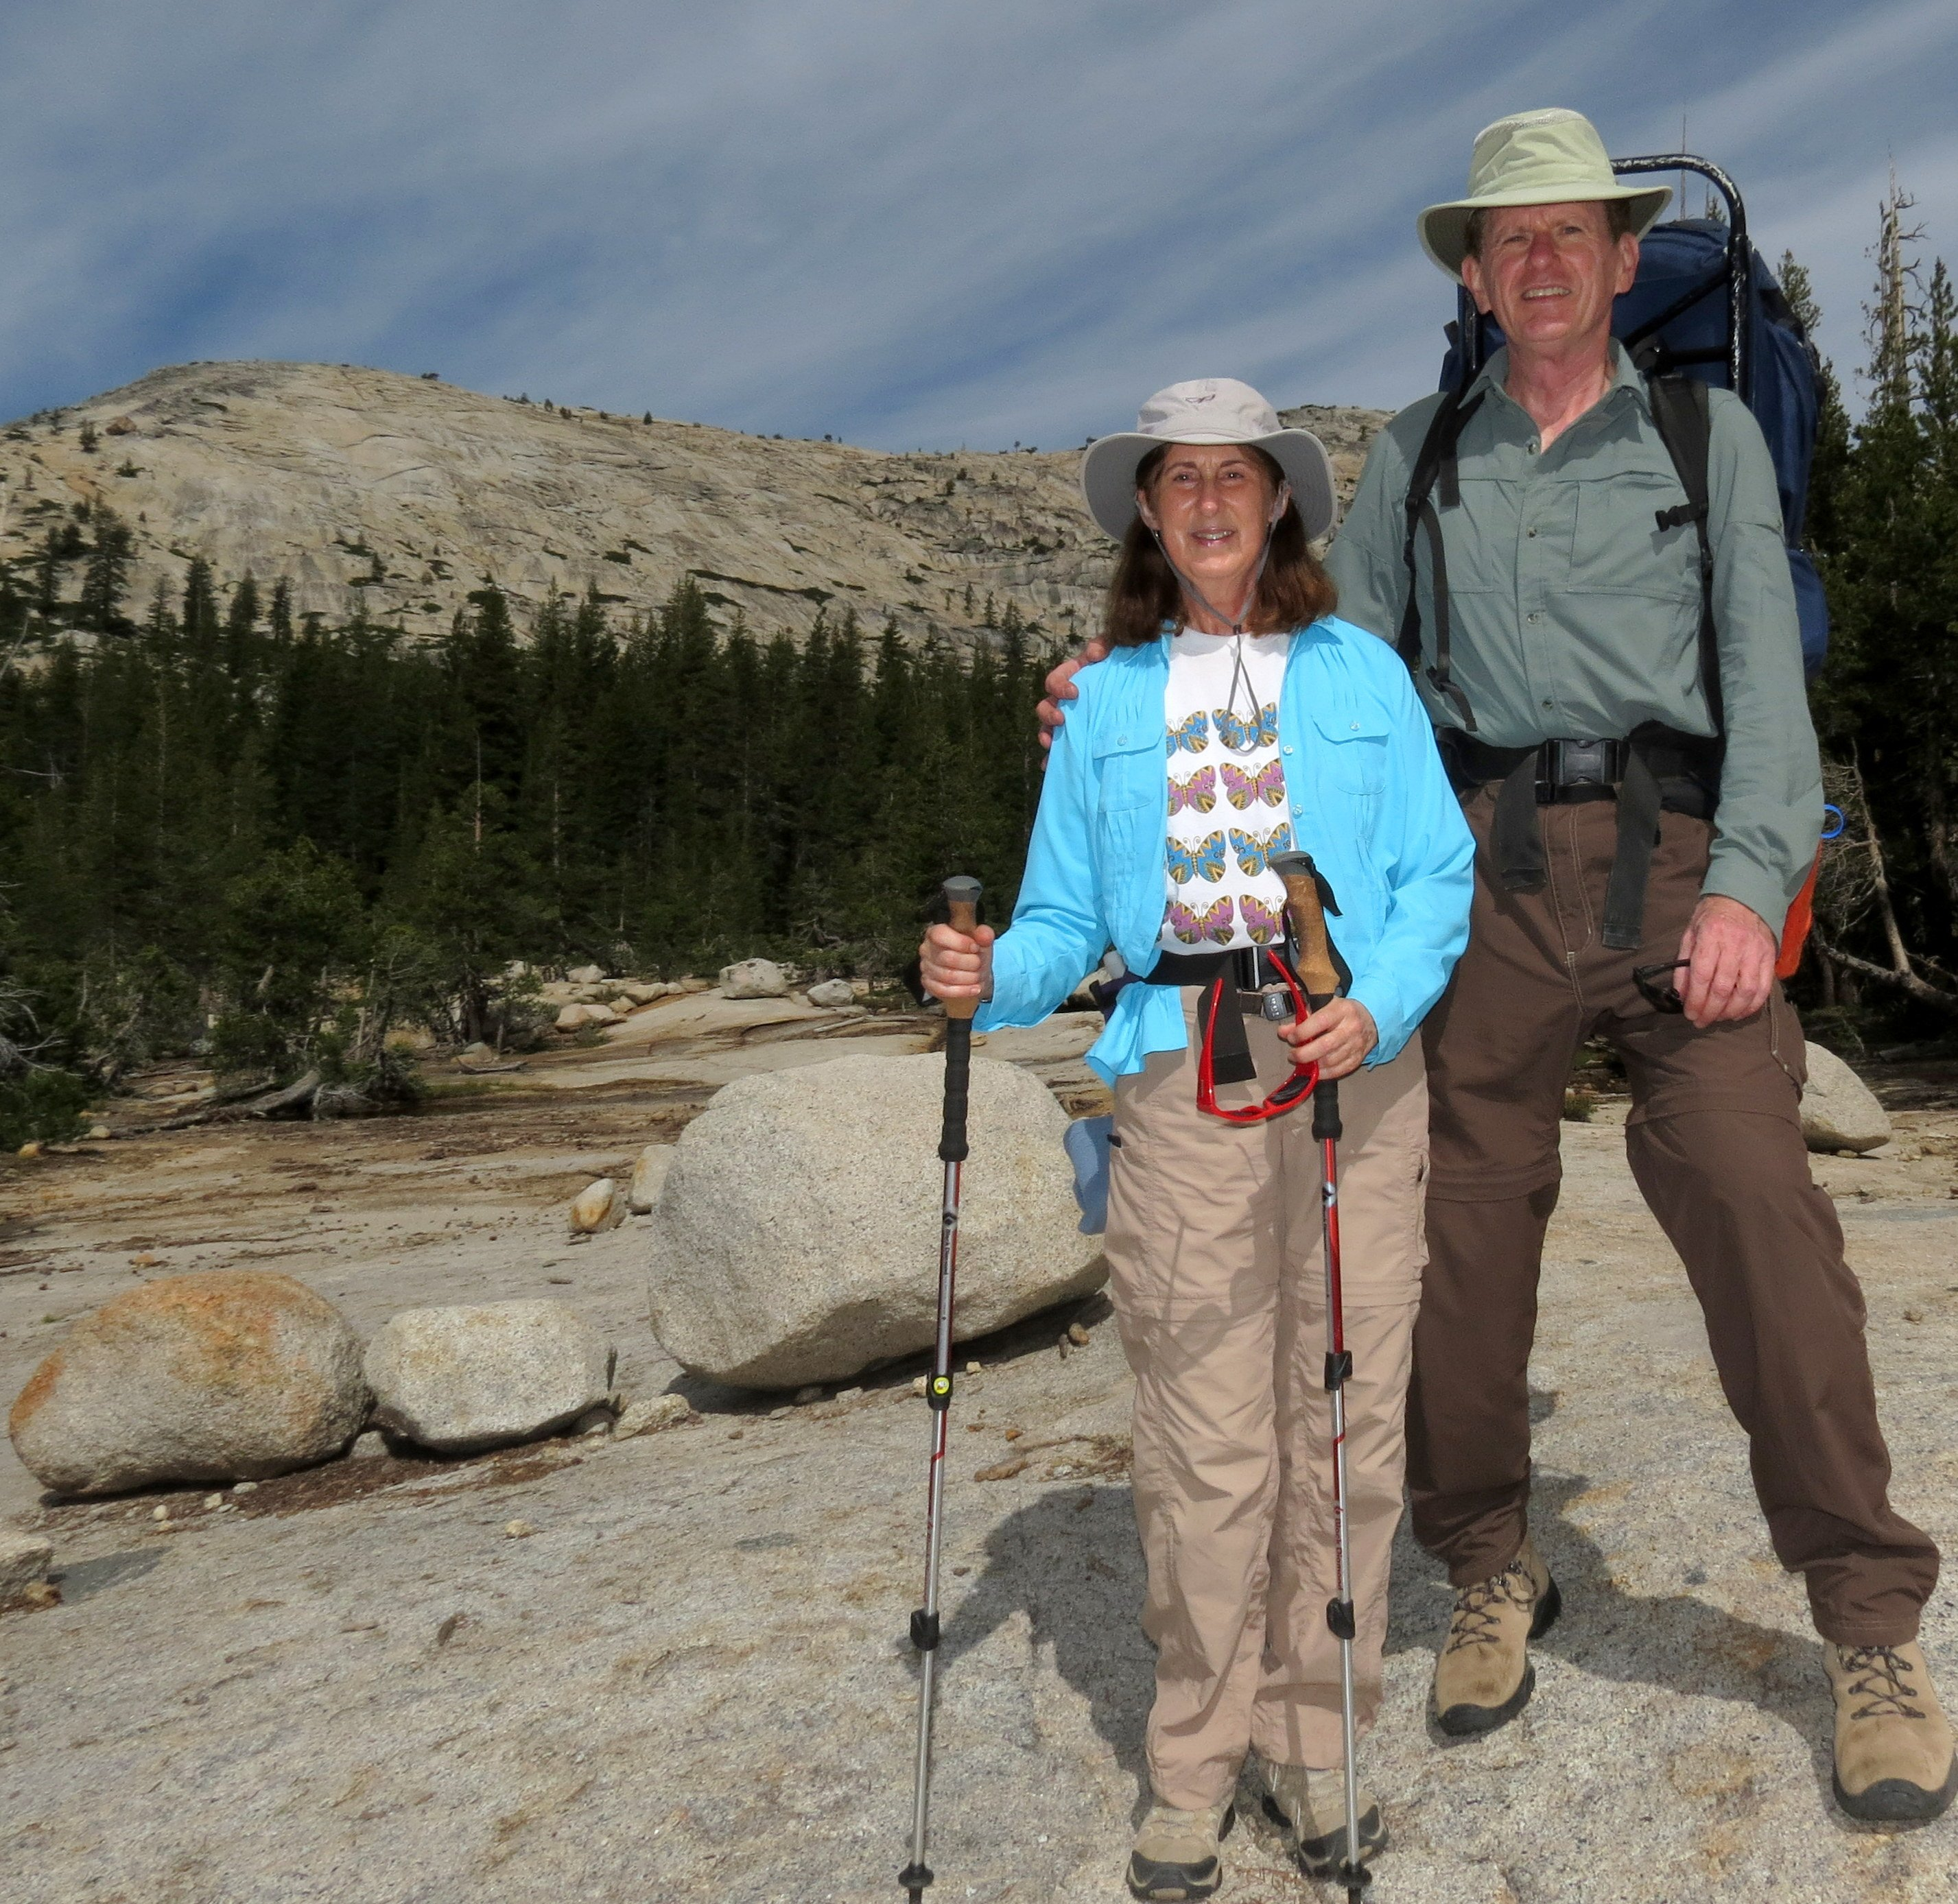 Hiking with Friends to Glen Aulin High Sierra Camp, Yosemite